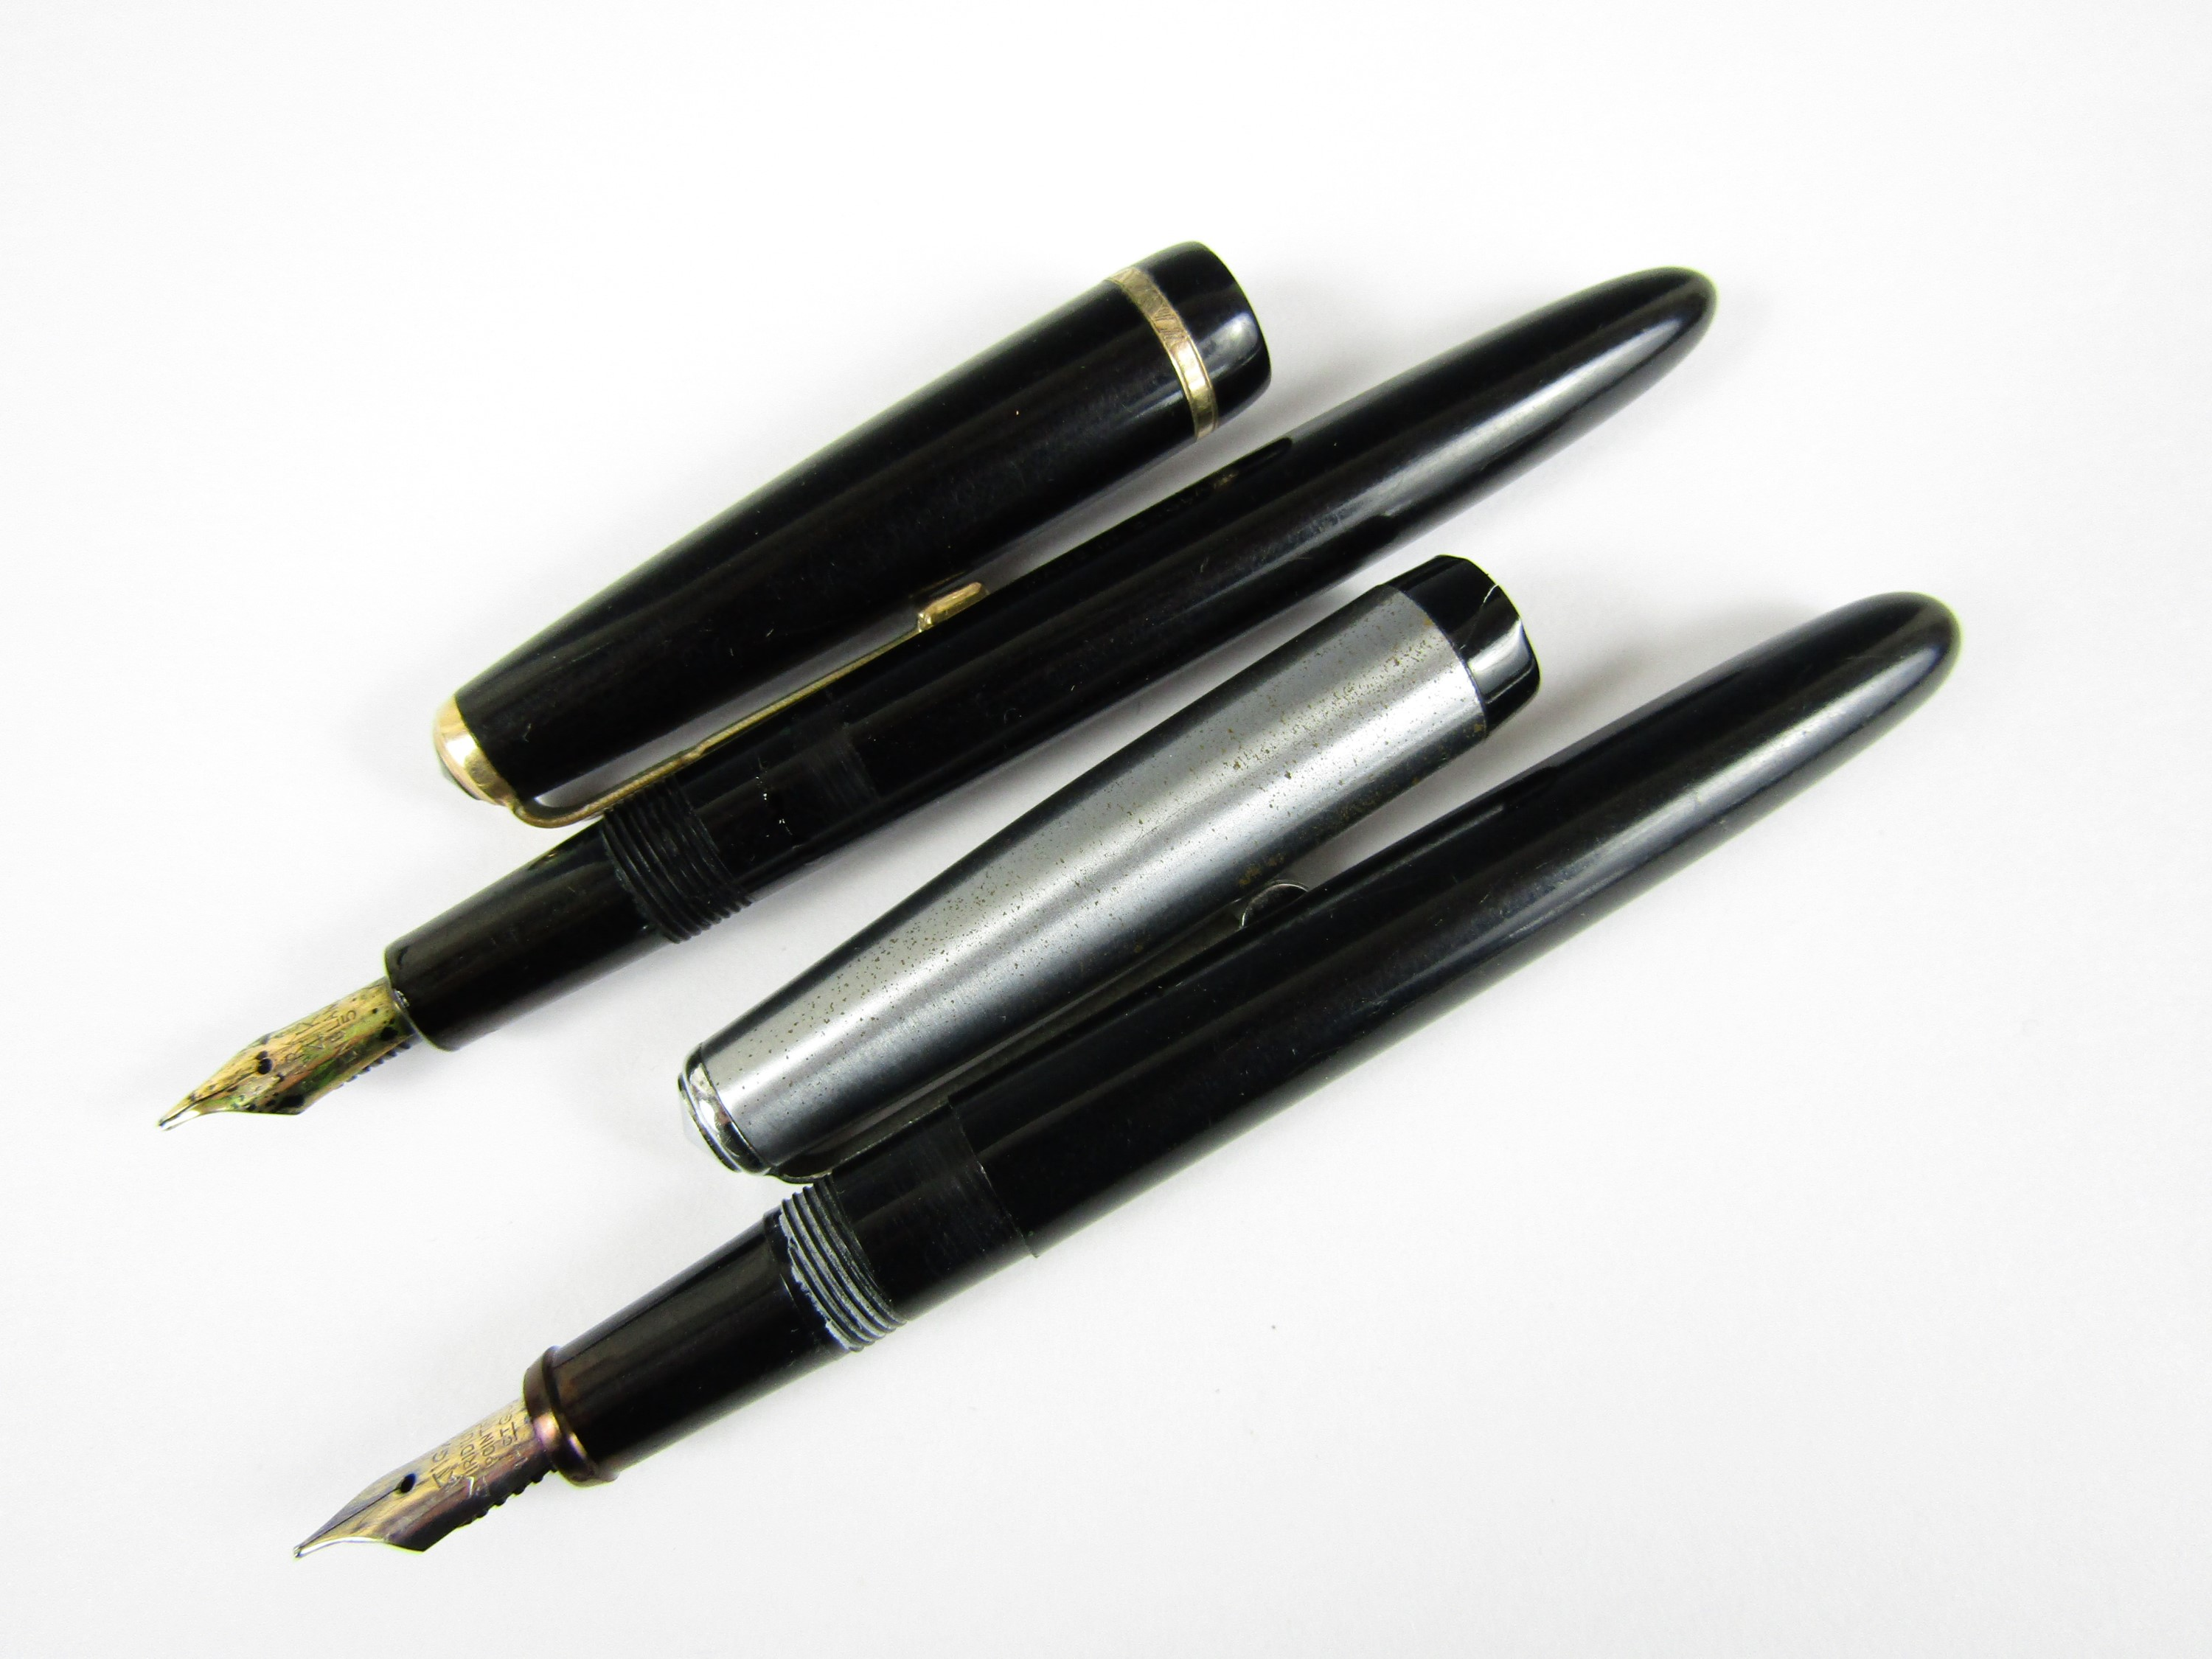 Lot 35 - A Parker Slimfold fountain pen with 14k gold nib and a Platignum fountain pen with a 14k gold and